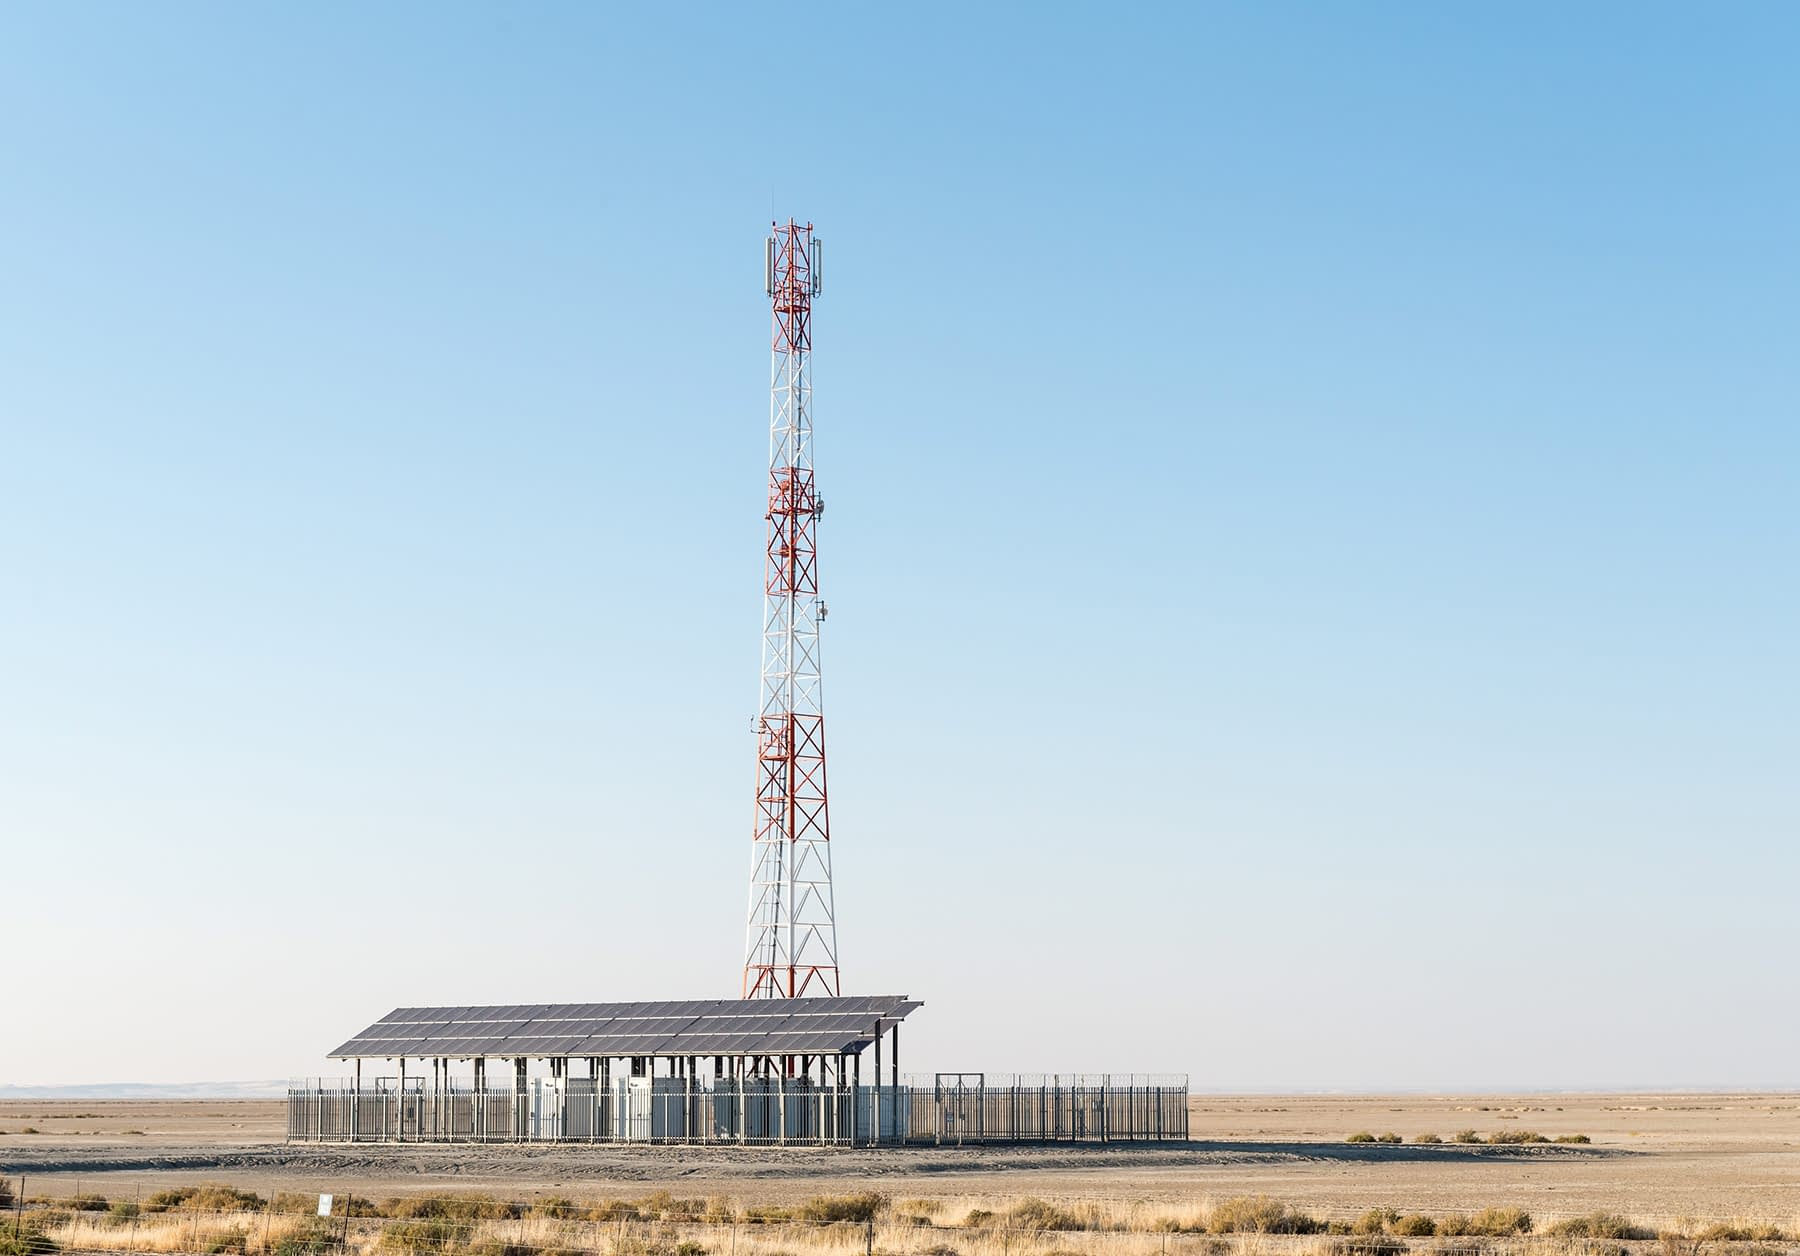 PV Solar Panels on Remote Cell Phone Towers in India